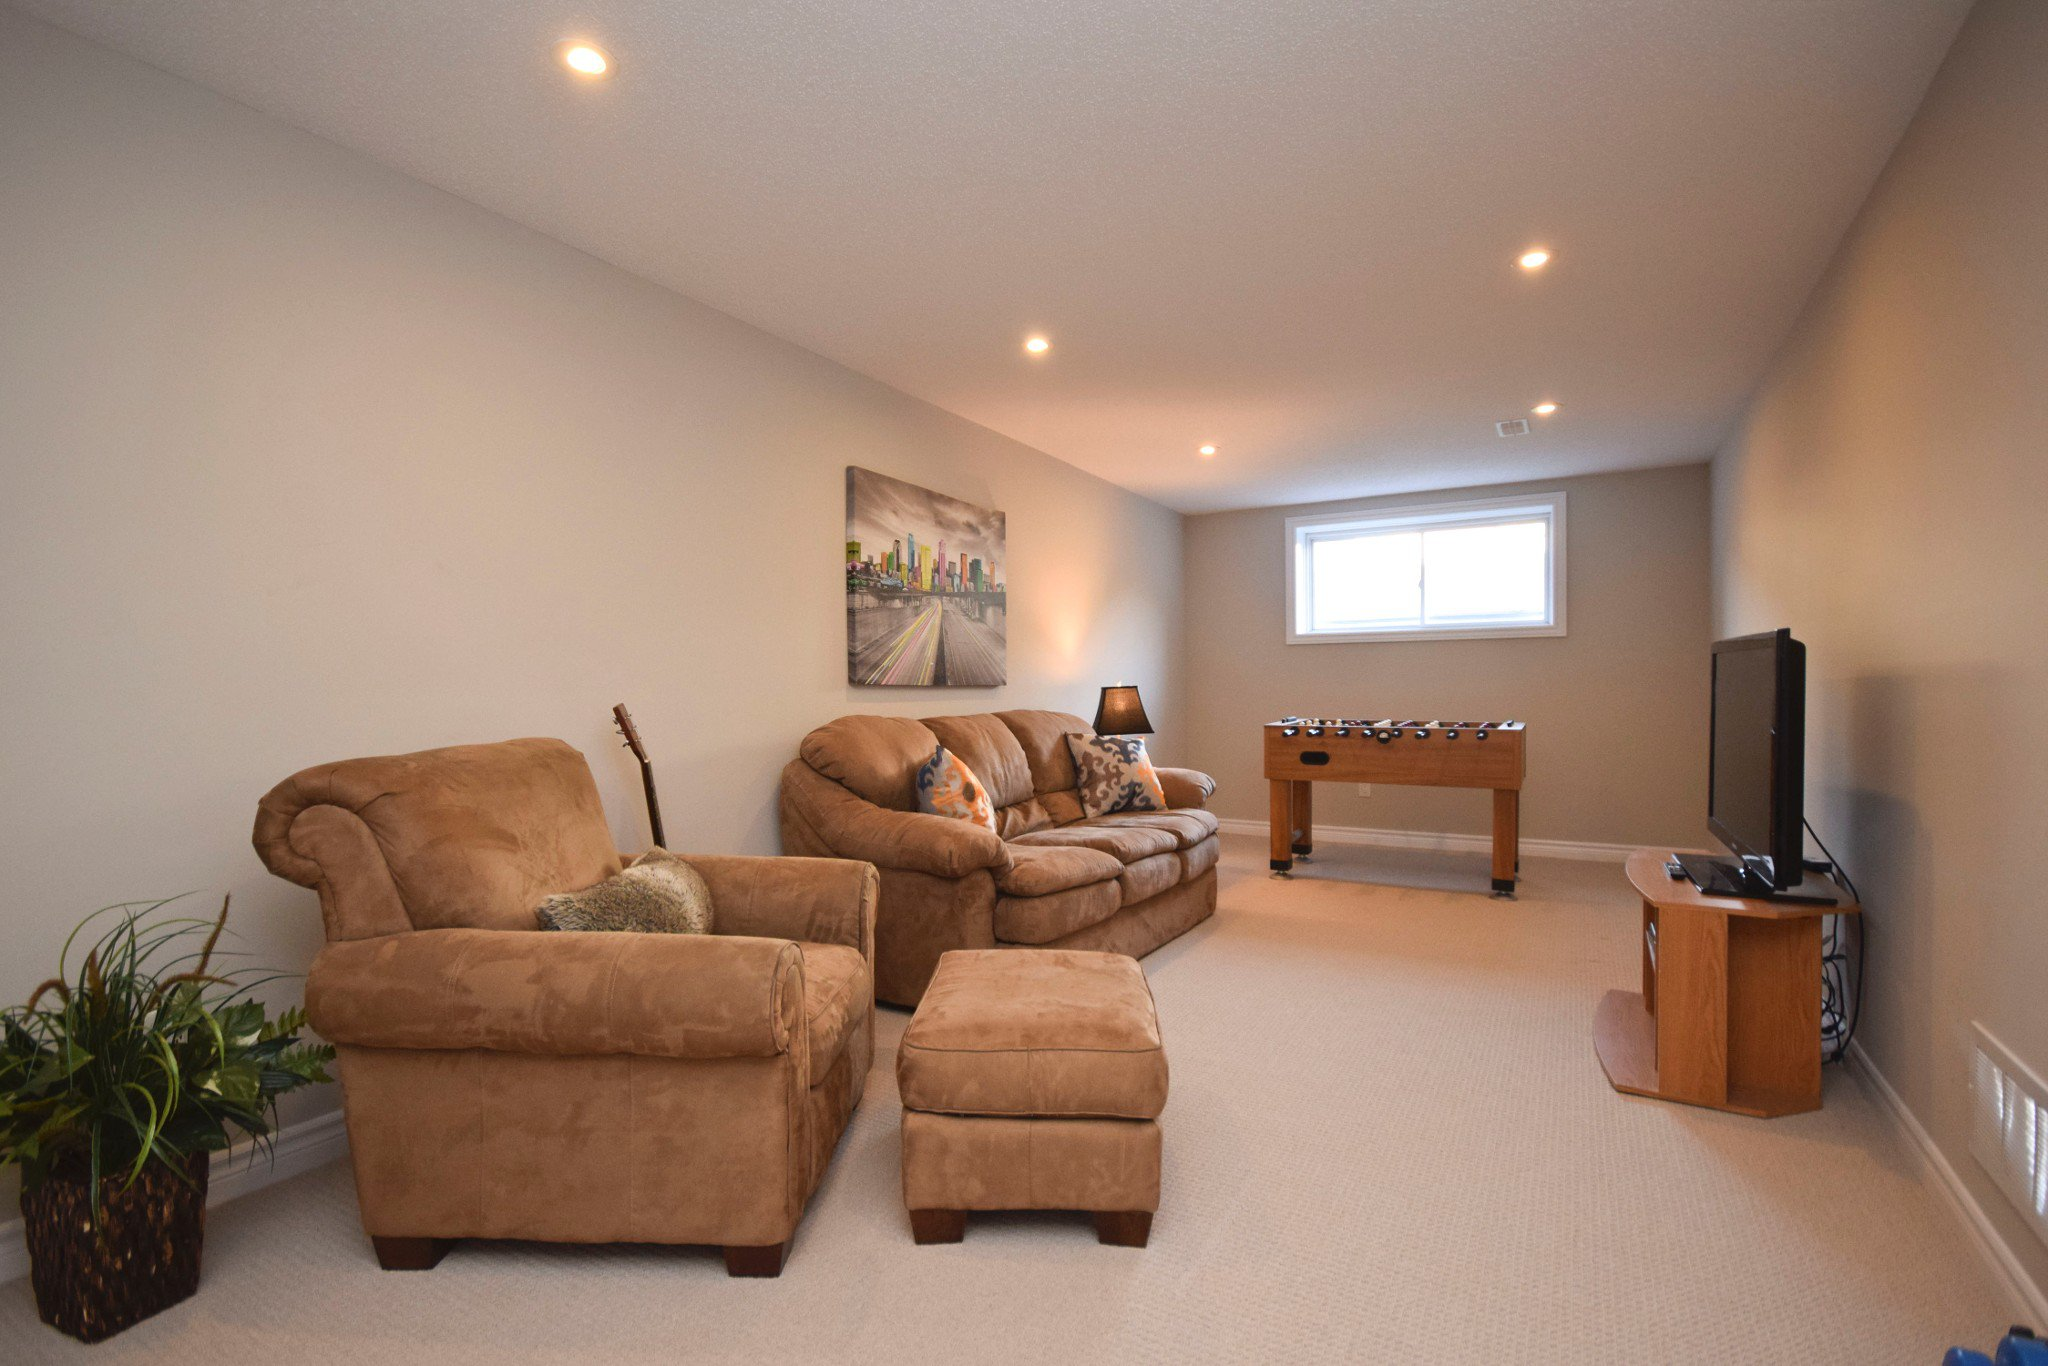 Photo 56: Photos: 131 Popplewell Crescent in Ottawa: Cedargrove / Fraserdale House for sale (Barrhaven)  : MLS®# 1130335